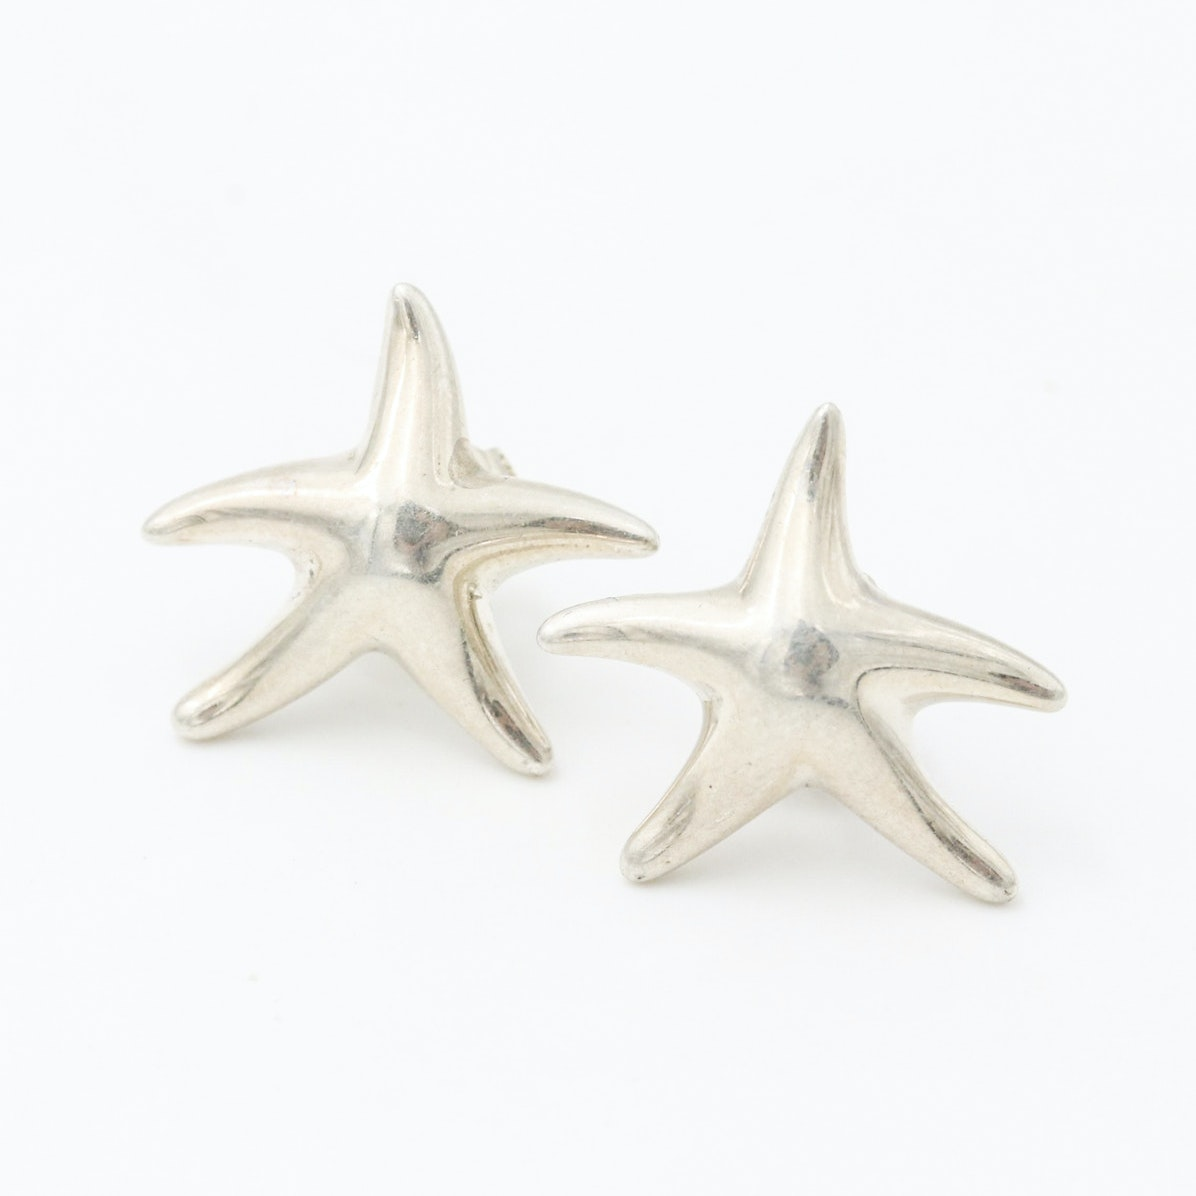 Elsa Peretti for Tiffany and Co. Spanish Sterling Silver Star Earrings